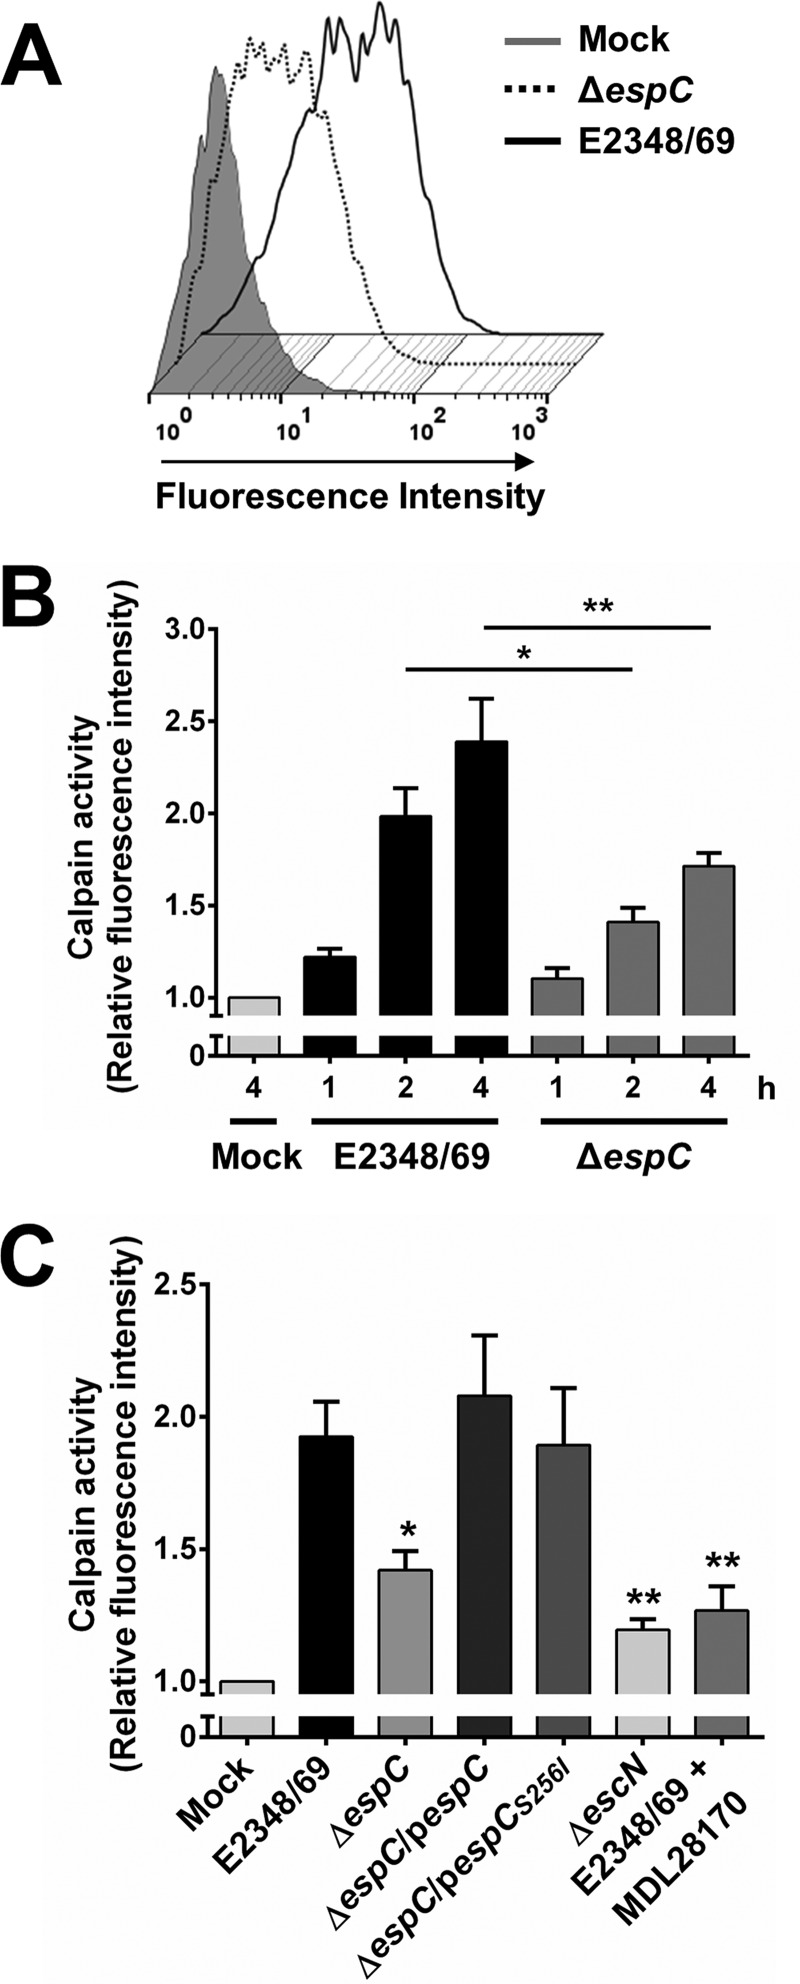 EspC induces calpain activity during EPEC infection. (A) Measurement of calpain activity induced by EspC. HEp-2 cells were pretreated with 20 µM fluorescent substrate t -BOC-Leu-Met-CMAC upon cleavage by calpain. Cells were infected with the EPEC WT (E2348/69) or Δ espC mutant at an MOI of 10 for 4 h. Calpain activity was measured as increase in fluorescence intensity. (B) Kinetics of calpain activity induced by the EPEC WT or Δ espC mutant. Cells were infected with the bacterial strains at an MOI of 10 for the indicated times. Calpain activity was measured as increase of mean fluorescence intensity. All measurements were expressed relative to the calpain activity measured in mock-infected cells. Activity is represented as fold change relative to uninfected cells. (C) EspC causes an increase in calpain activity. HEp-2 cells were infected with the different bacterial strains as indicated at an MOI of 10 for 3 h. MDL28170, a specific calpain inhibitor, was included to demonstrate that the increase of fluorescence is specific to calpain-like proteases. Data are shown as the mean ± SEM from at least 3 independent experiments. Statistical analyses were performed using (B) unpaired t test (*, P